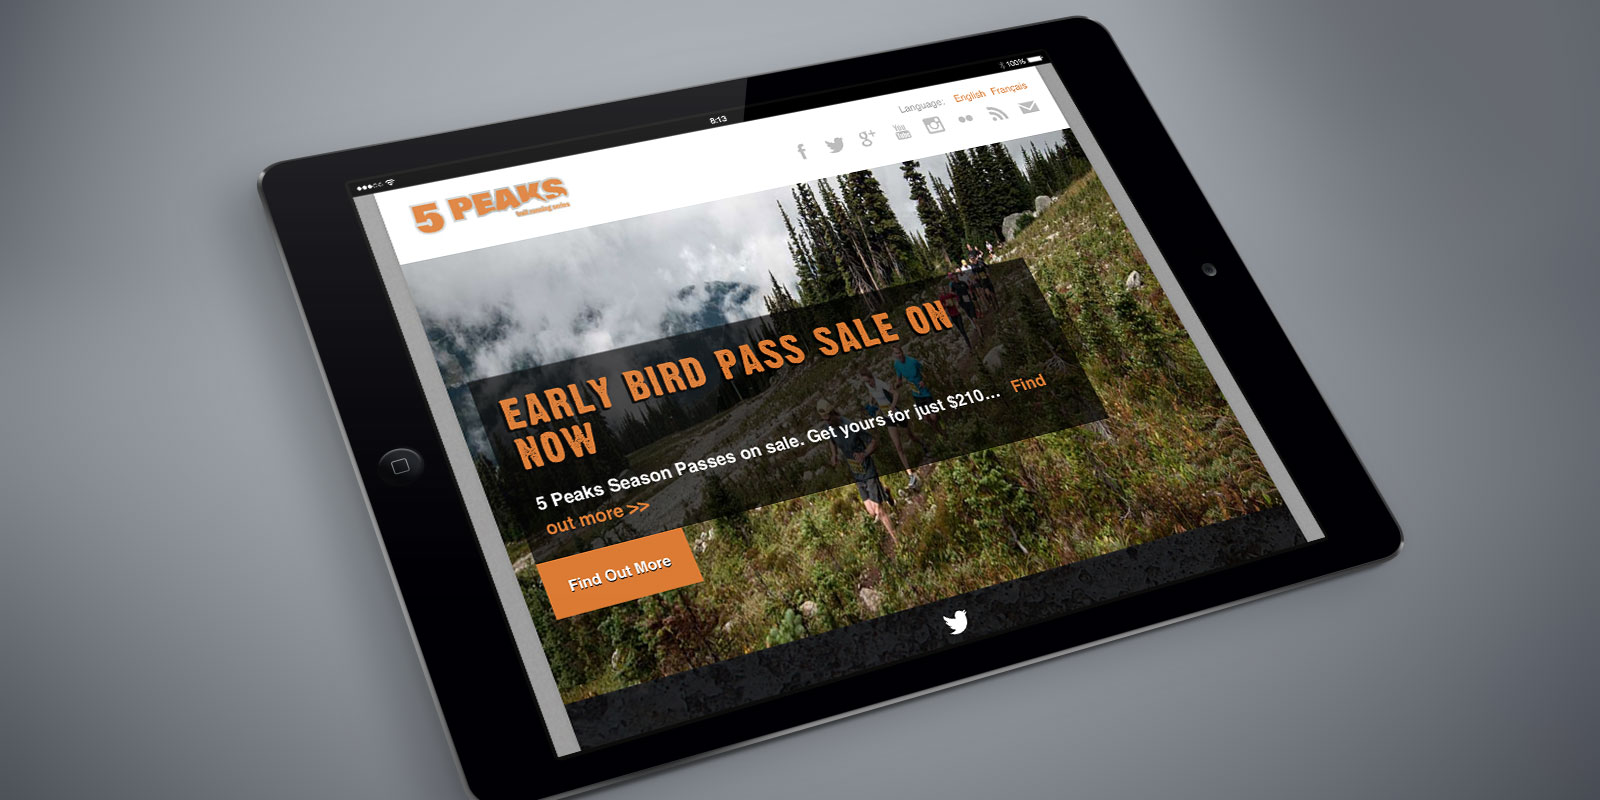 5 Peaks website on a tablet